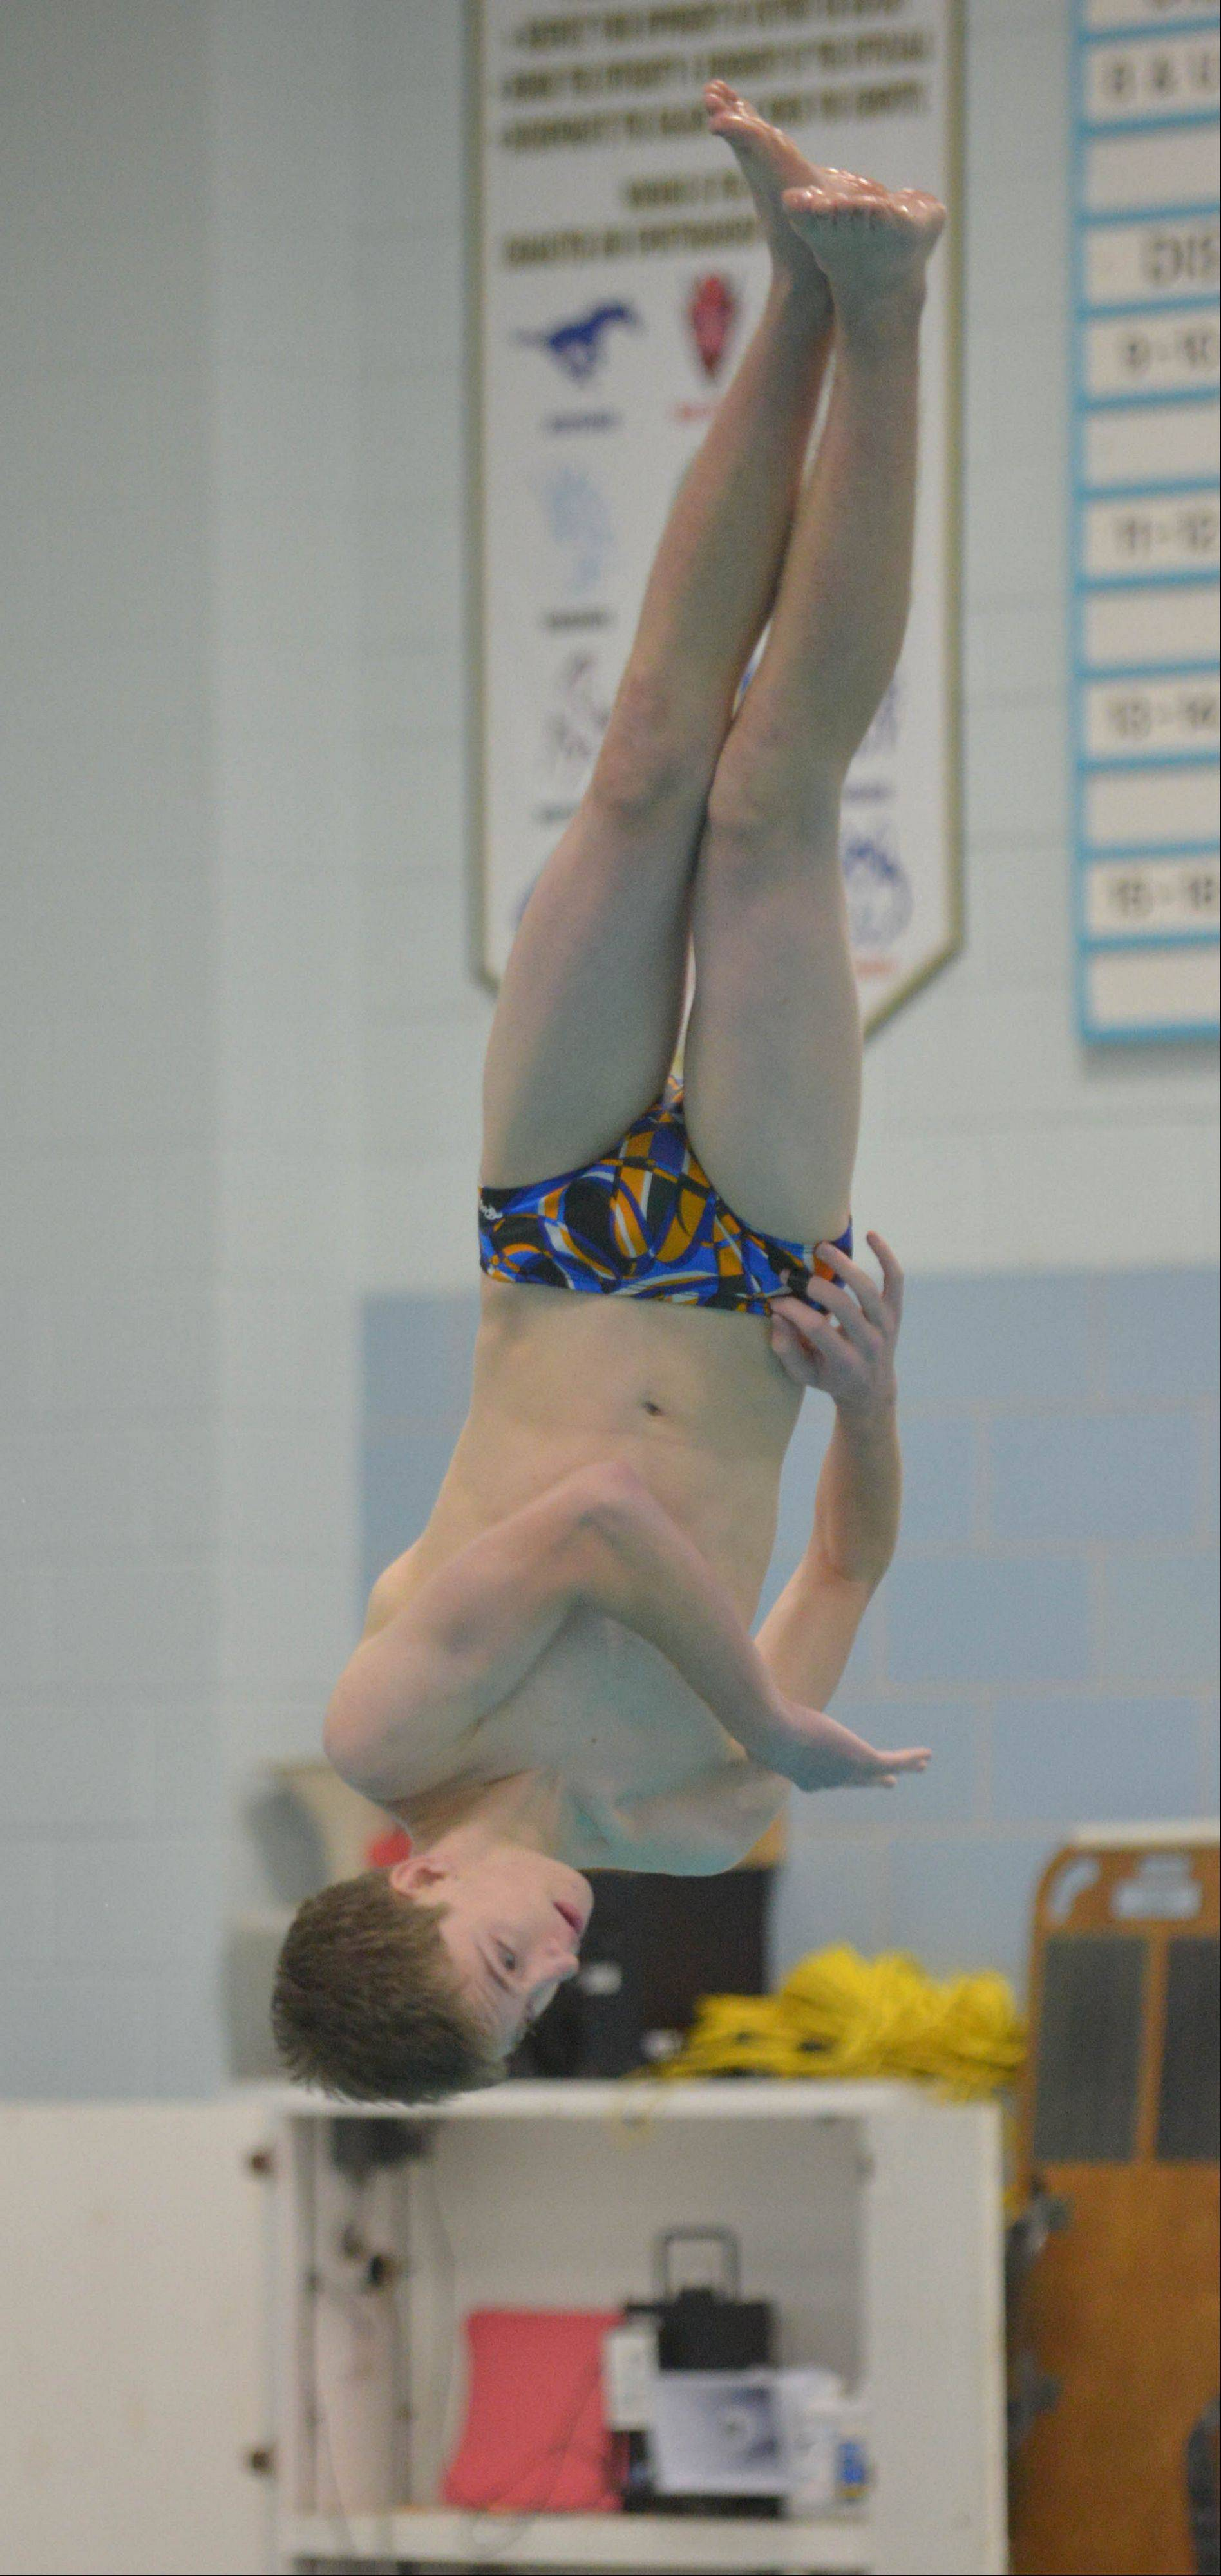 Paul Michna/pmichna@dailyherald.com Lucas Cooperman of Wheaton took part in the diving competition at the Hinsdale South College Events boys swimming meet Saturday.